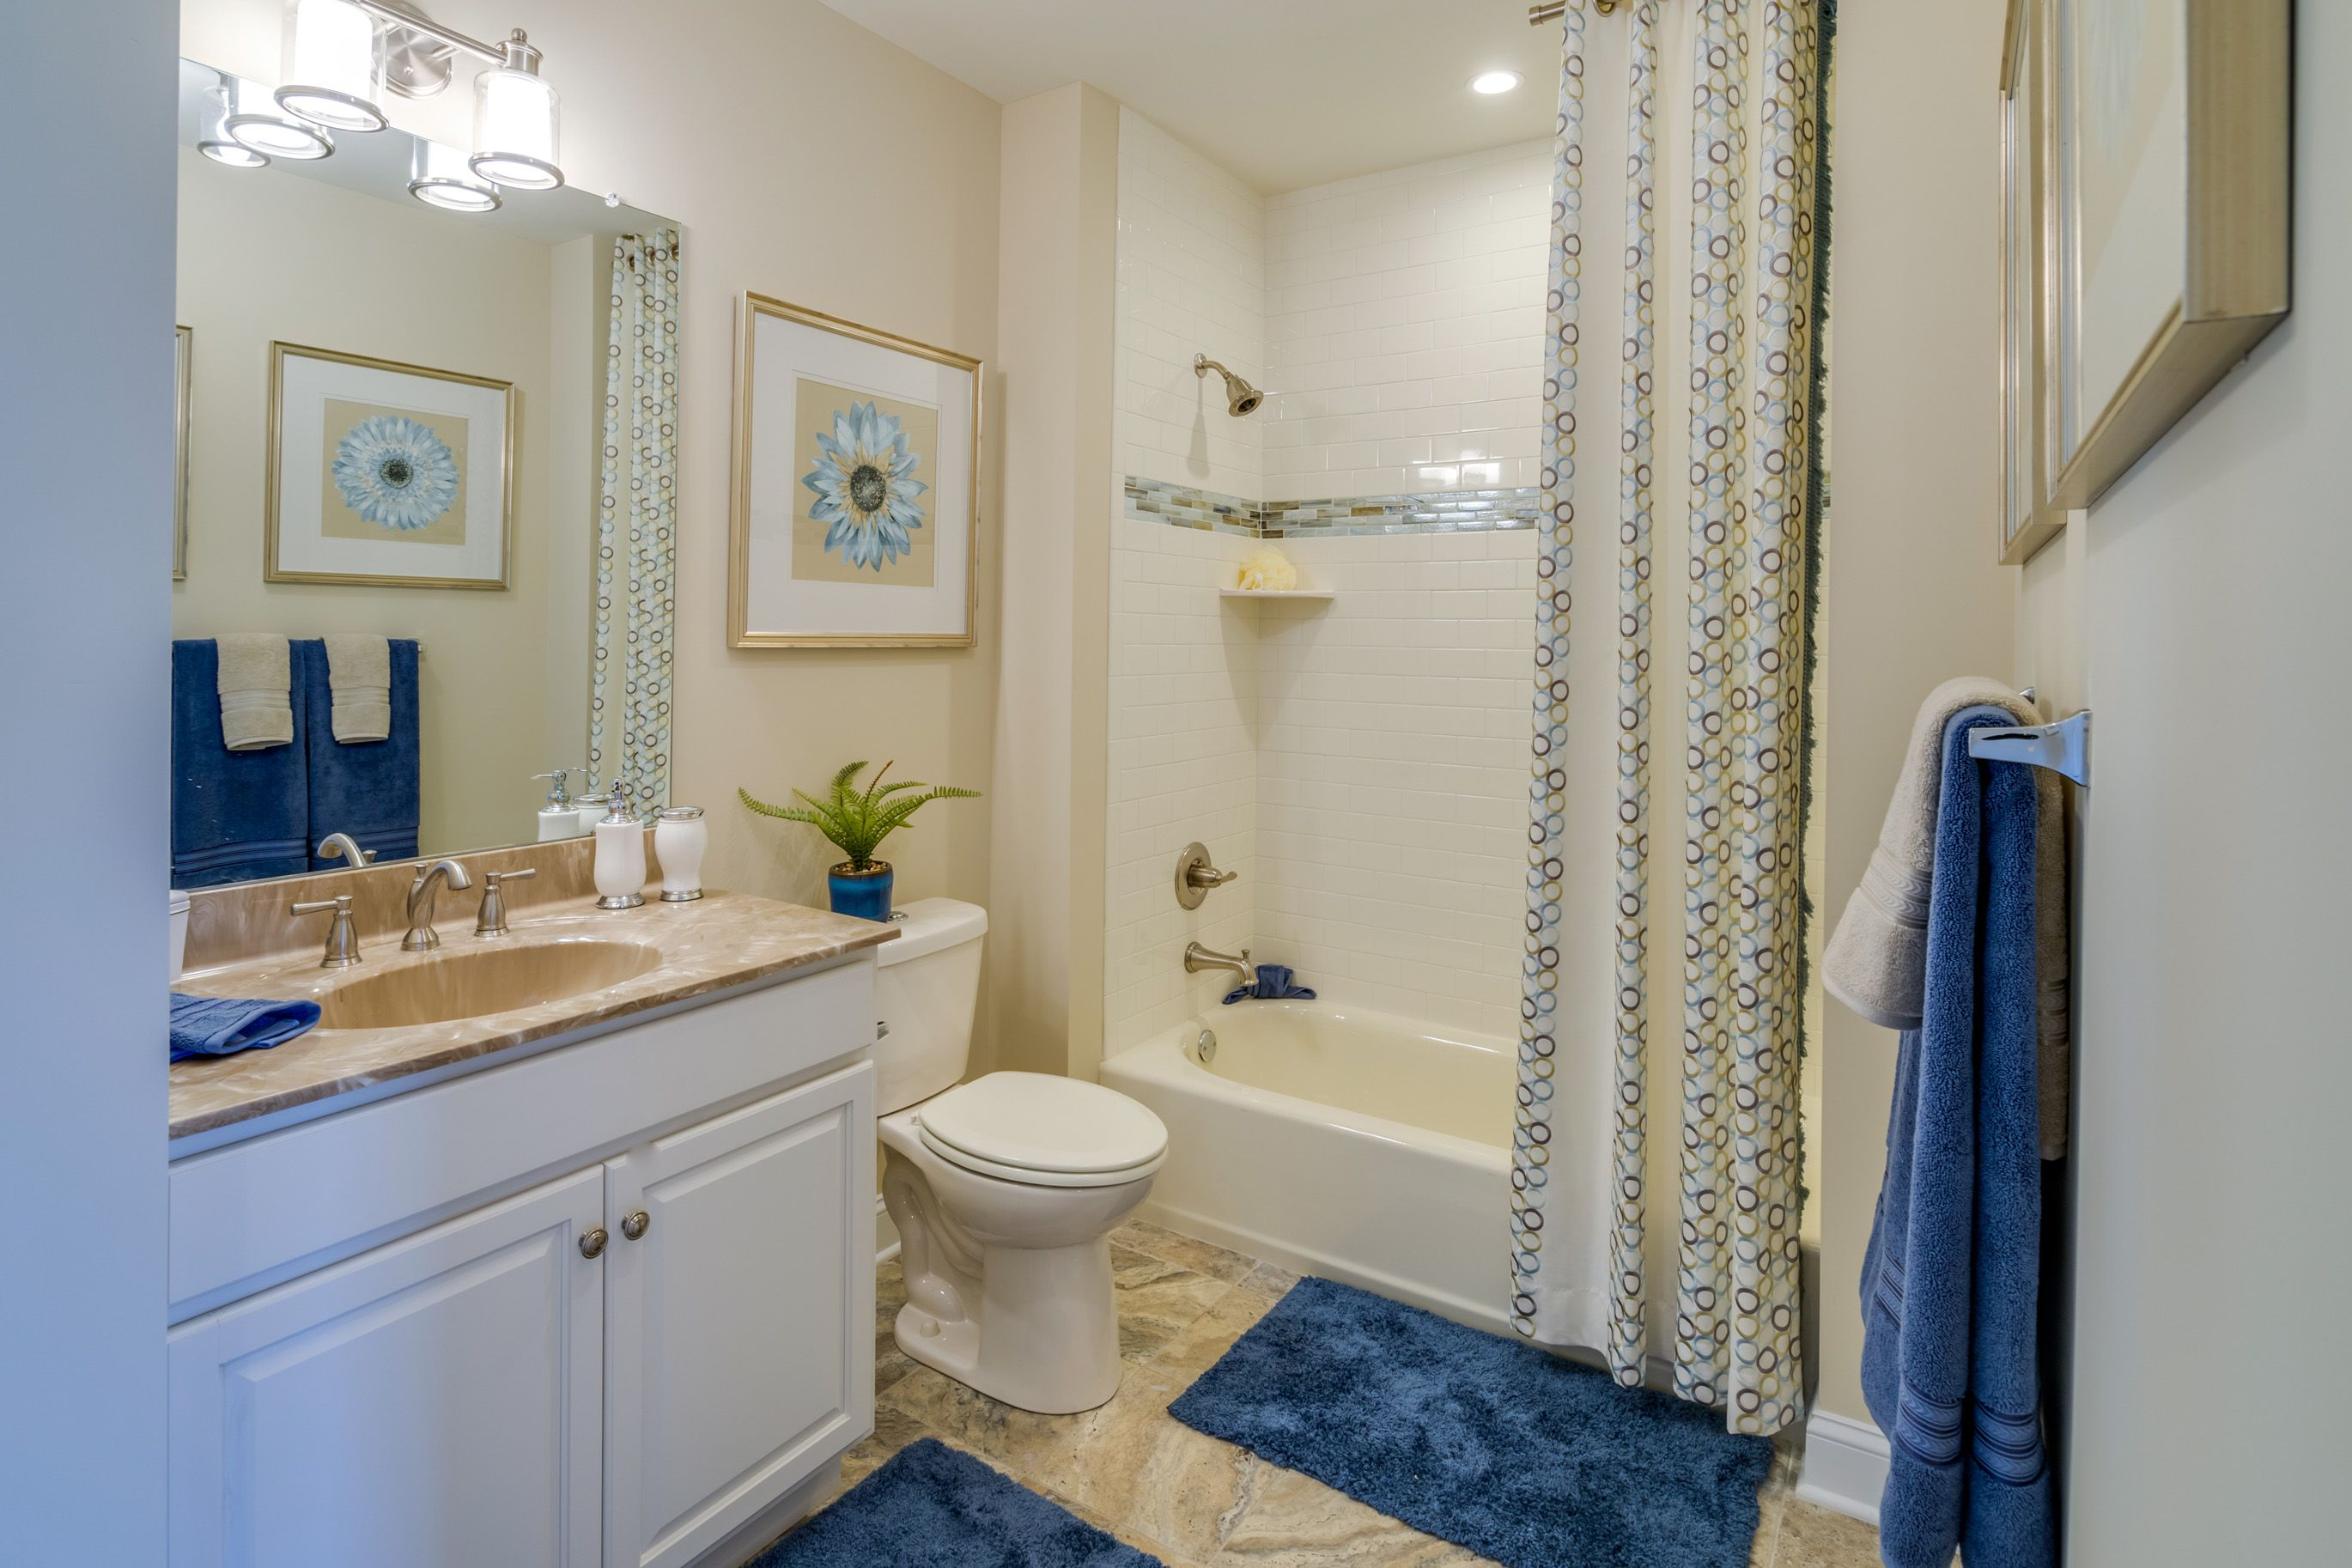 Bathroom featured in the Gianna By Judd Builders and Developers in Philadelphia, PA